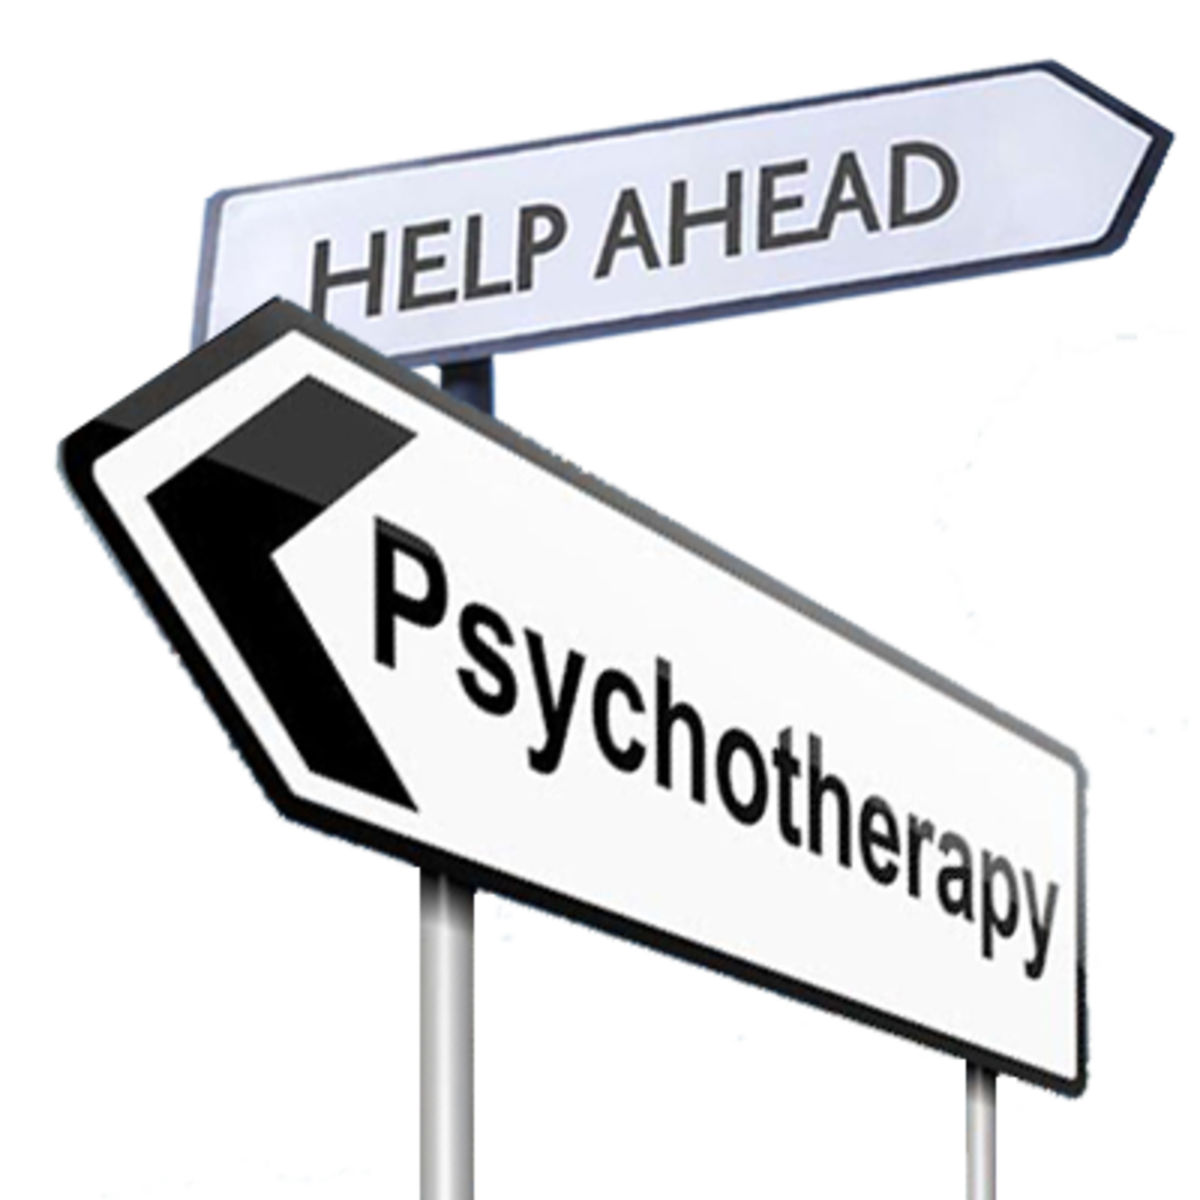 Don't hesitate to consult a psychotherapist